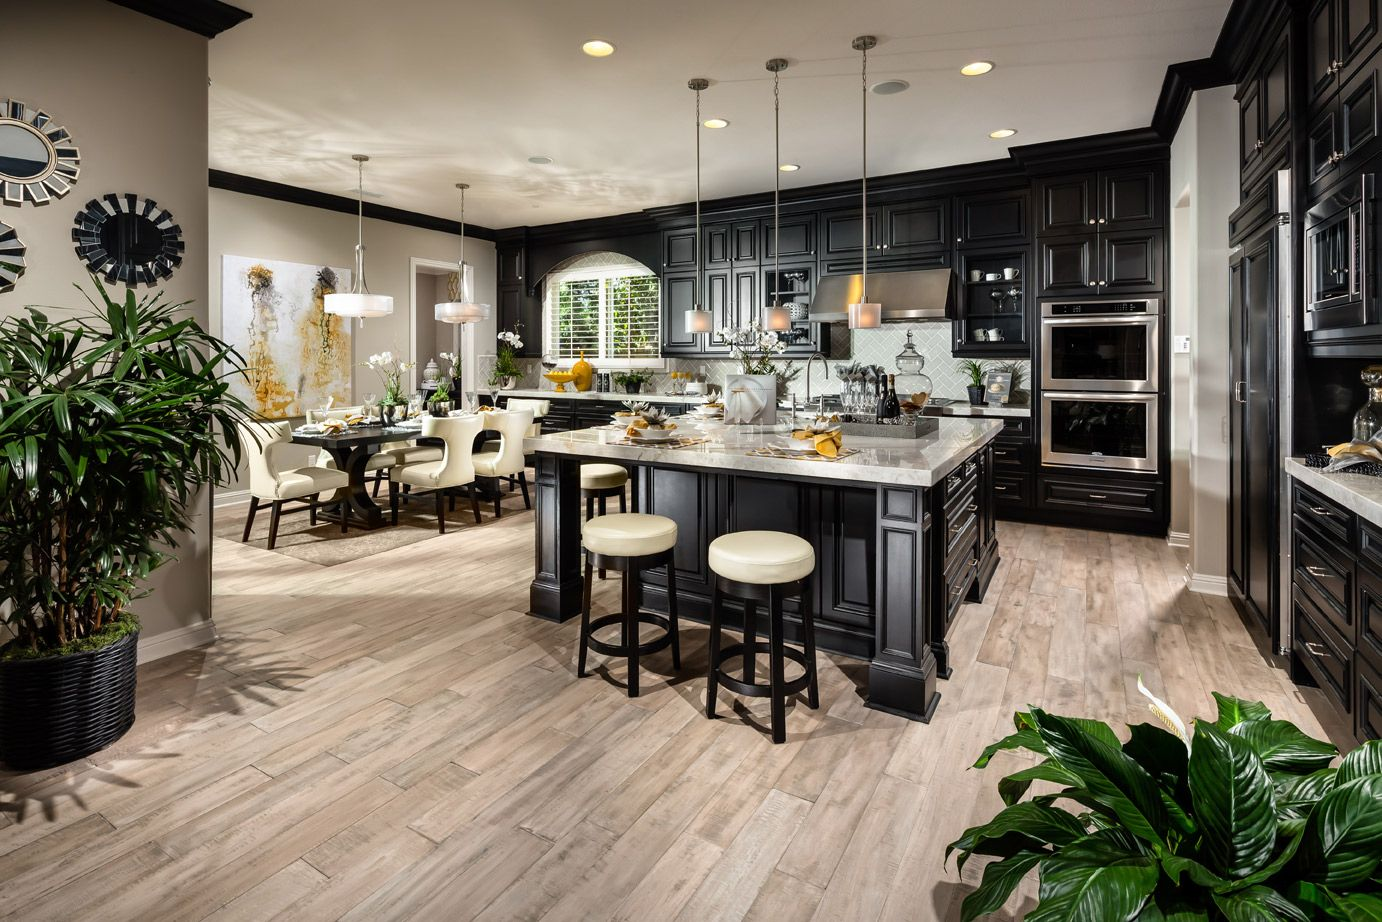 The highlands at baker ranch in lake forest ca palisade - Highlands designs custom kitchen cabinets ...